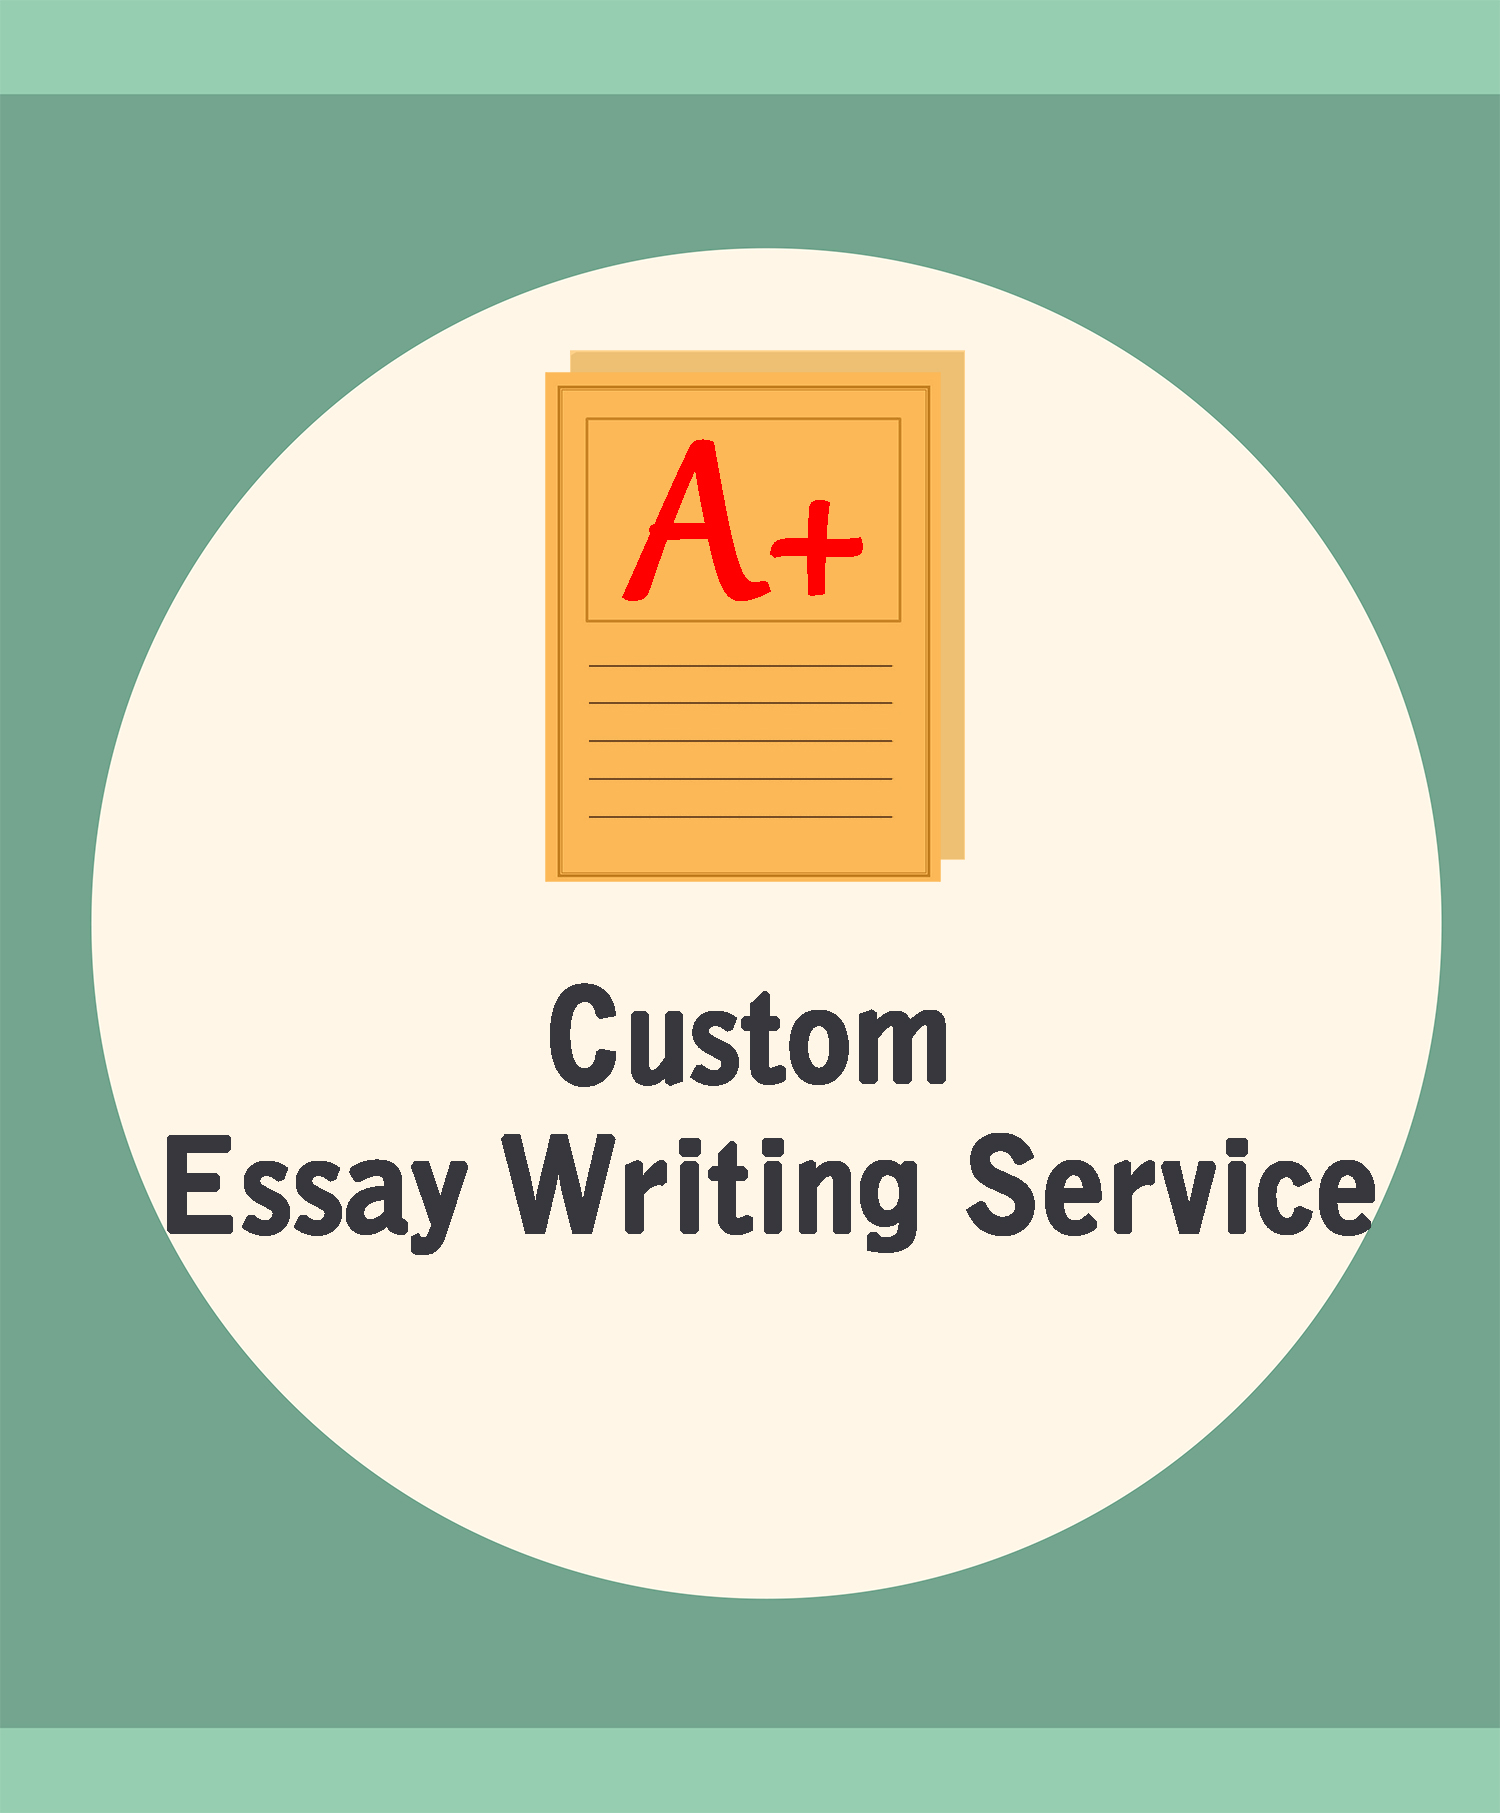 Why Do Students Seek Psychology Dissertation Writing Help?